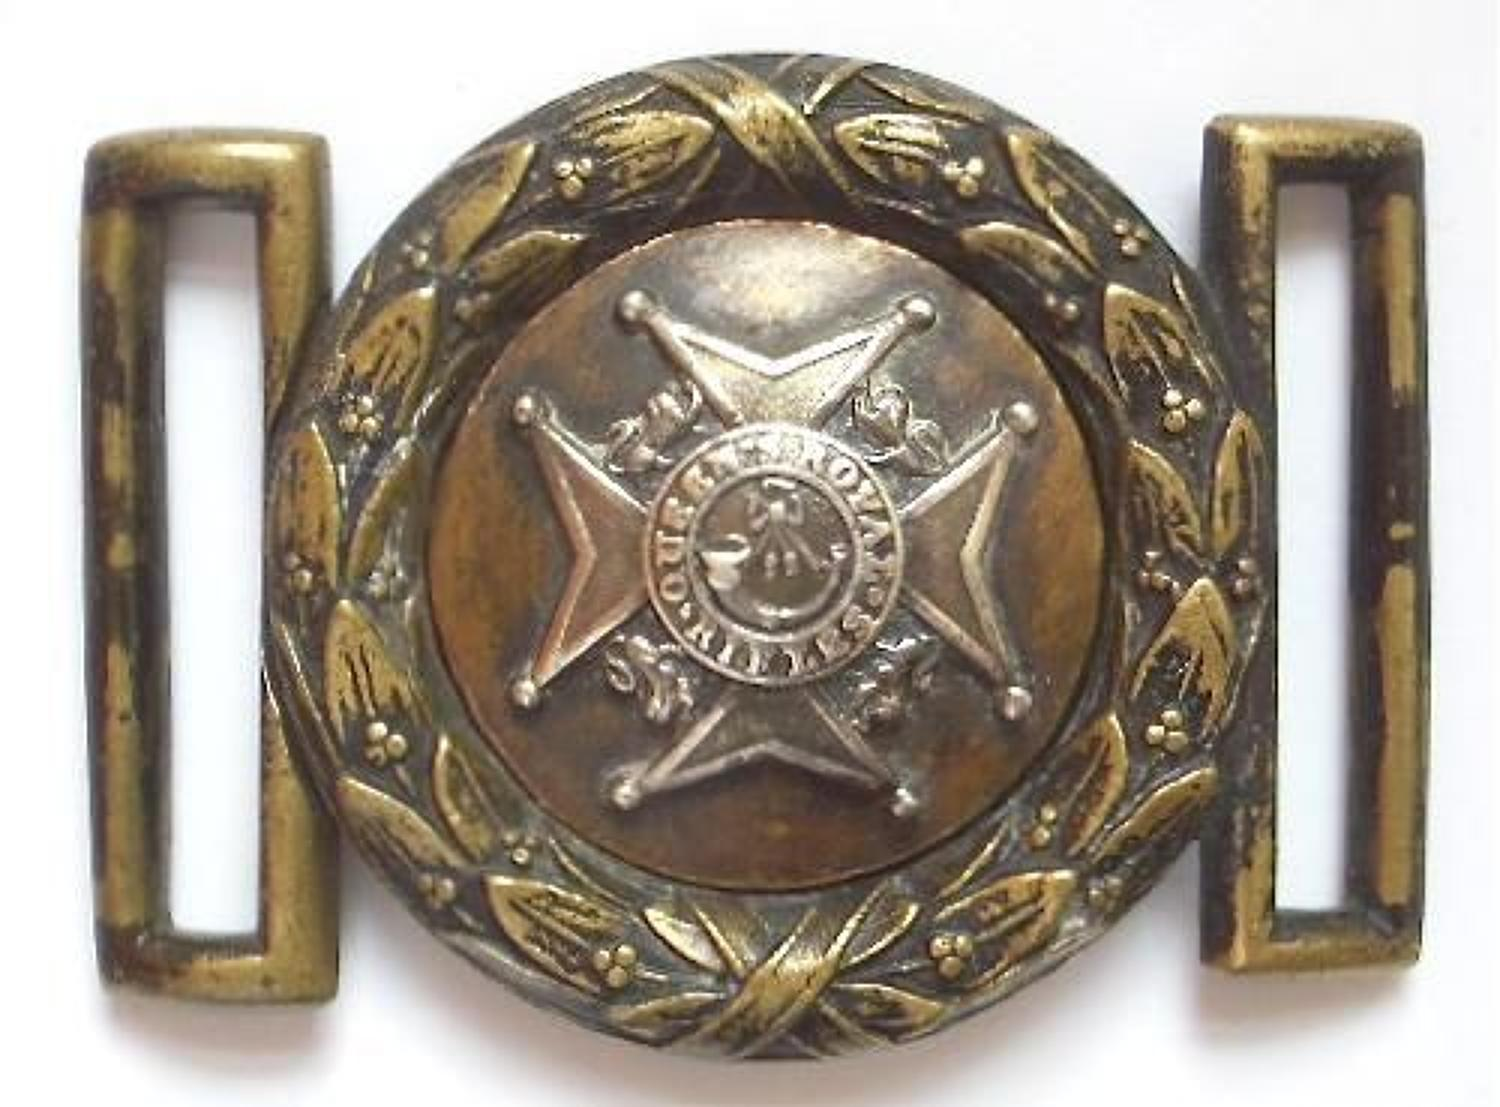 Irish. Antrim Militia Victorian Officer's waist belt clasp